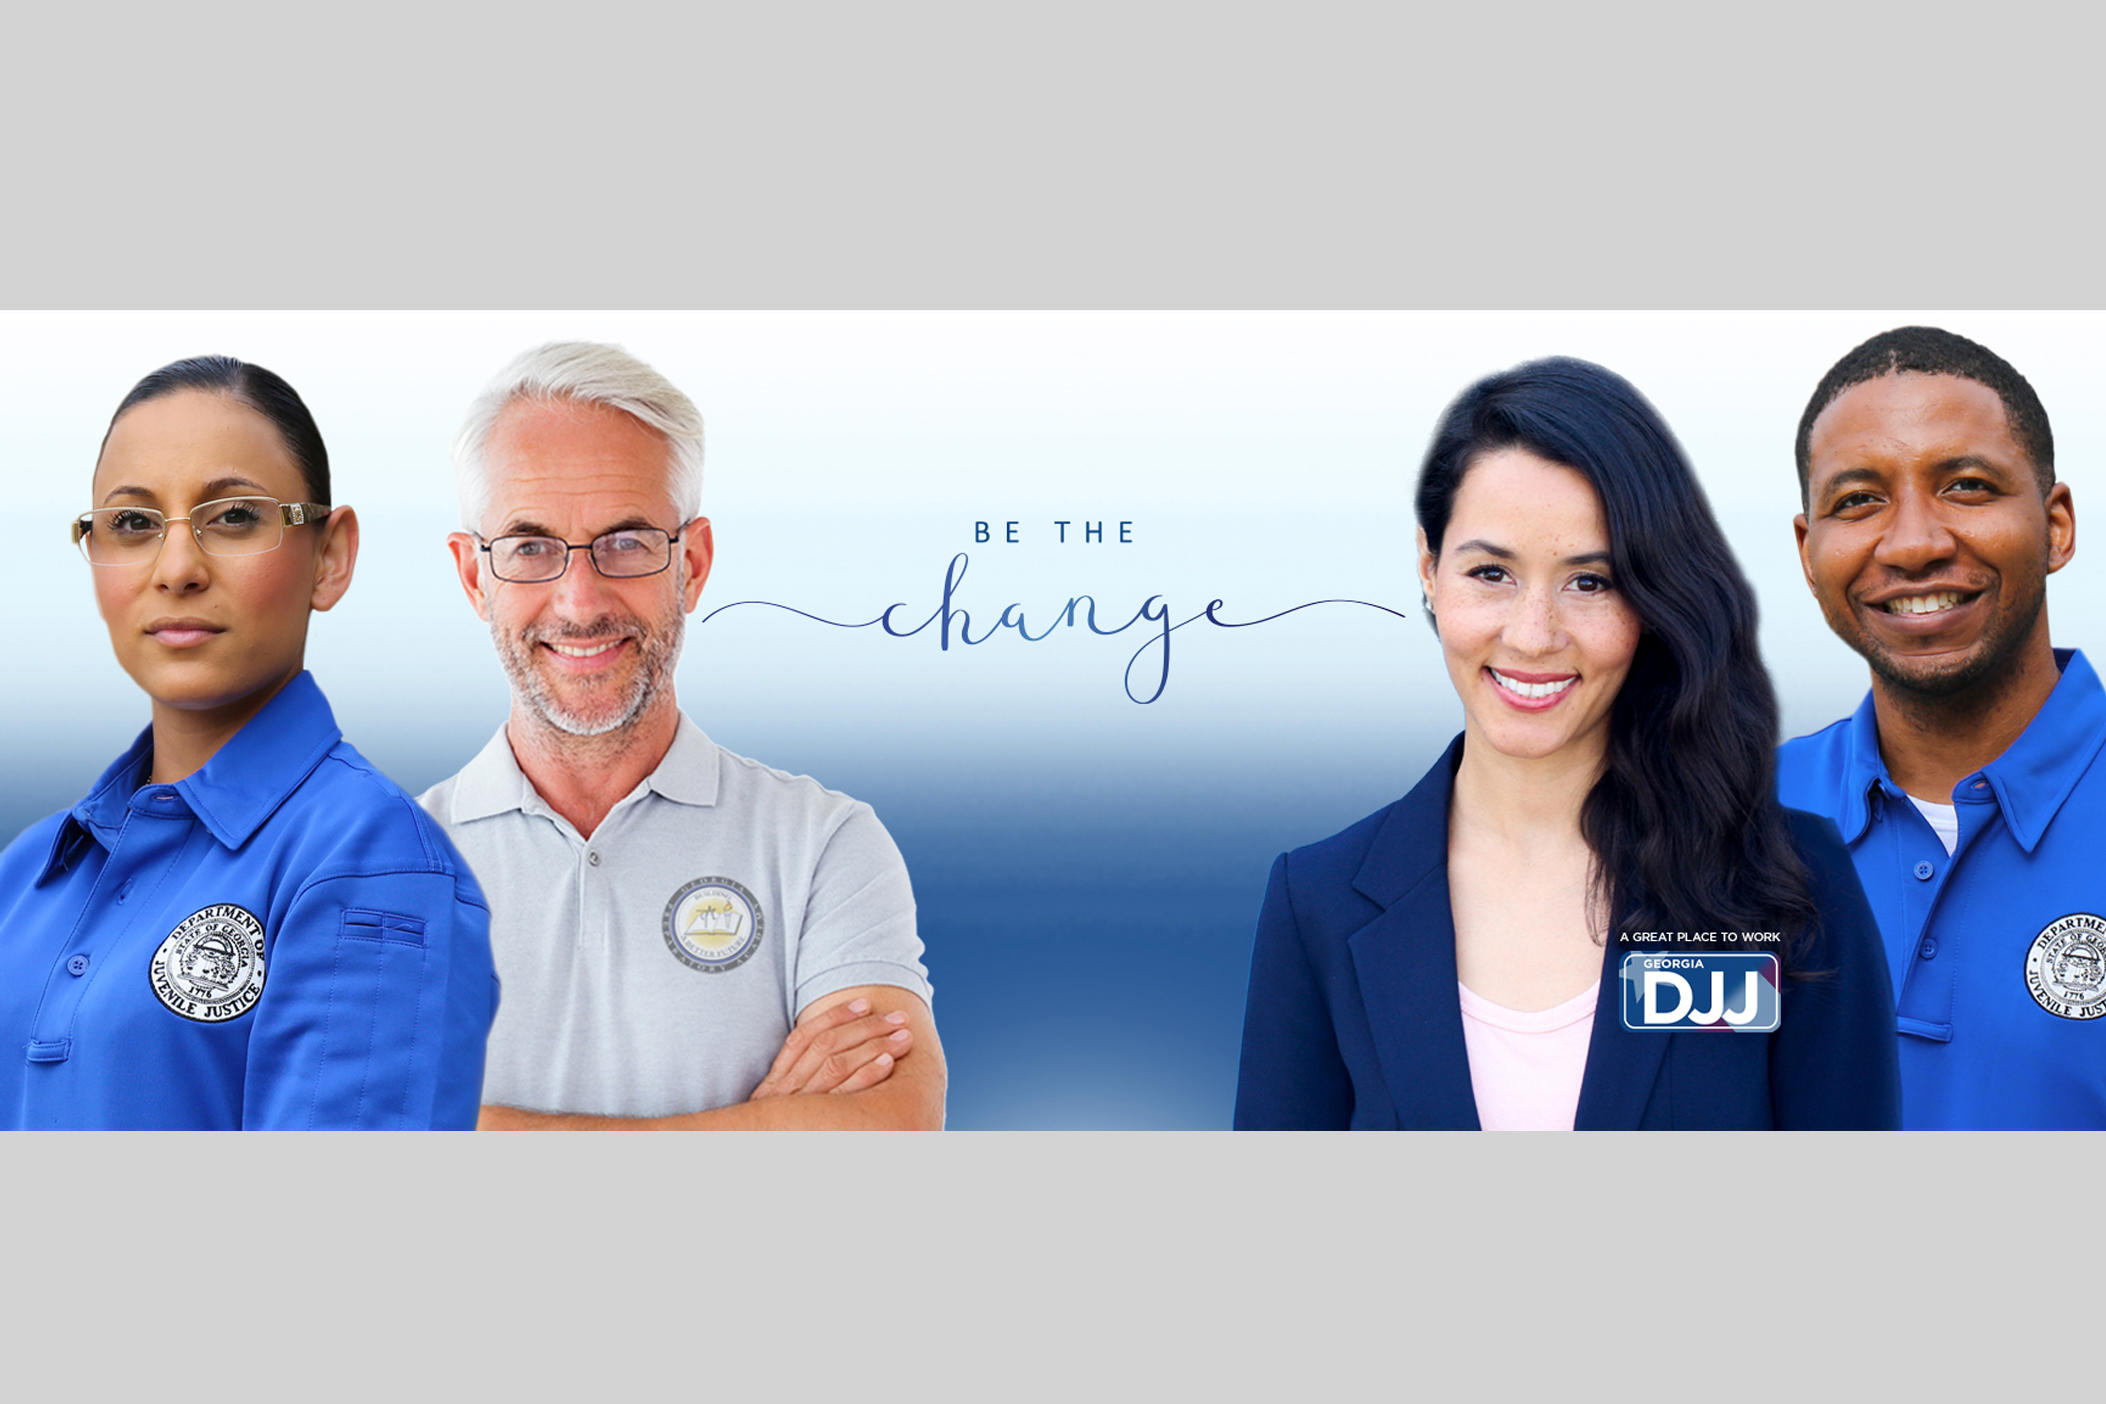 DJJ Home Page Banner - Be The Change